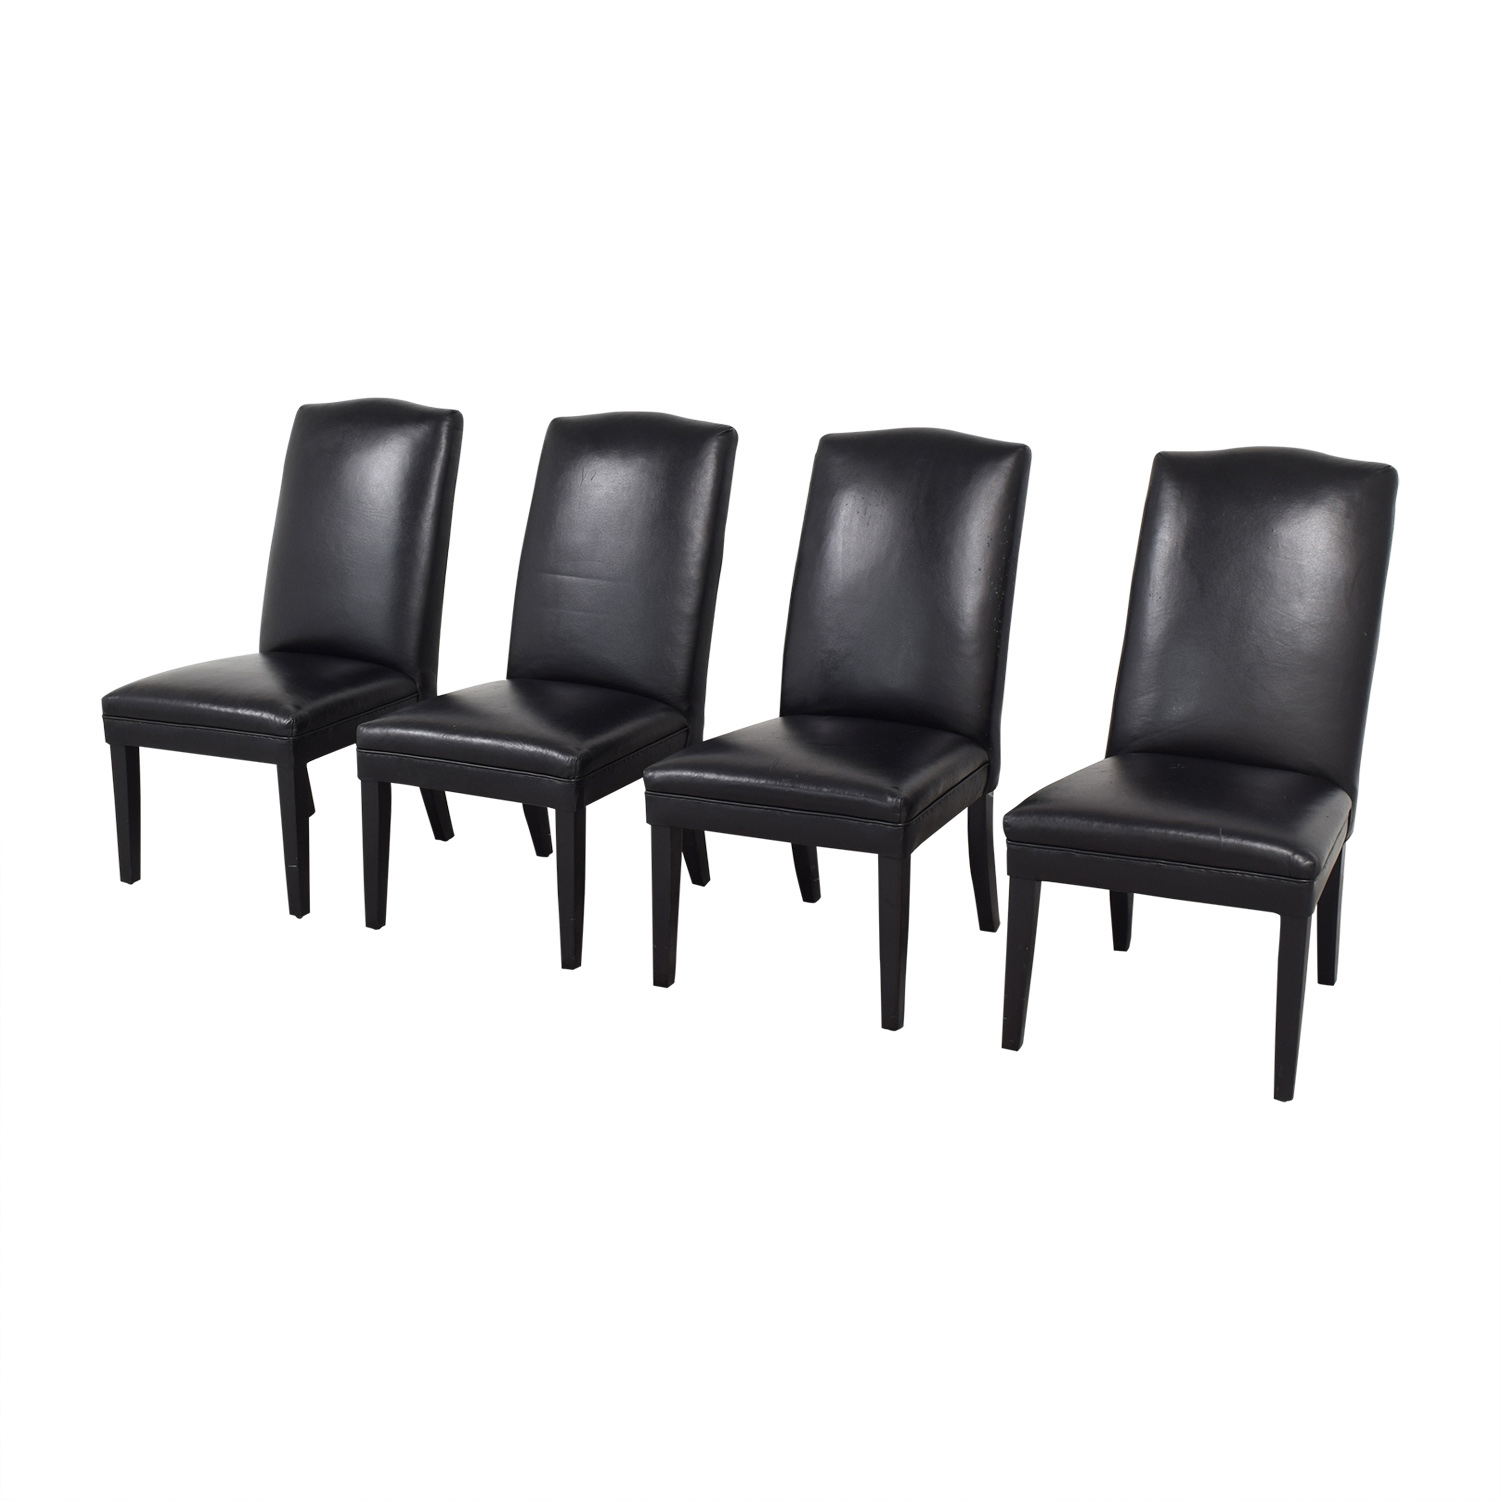 buy Classic Style High Back Dining Chairs